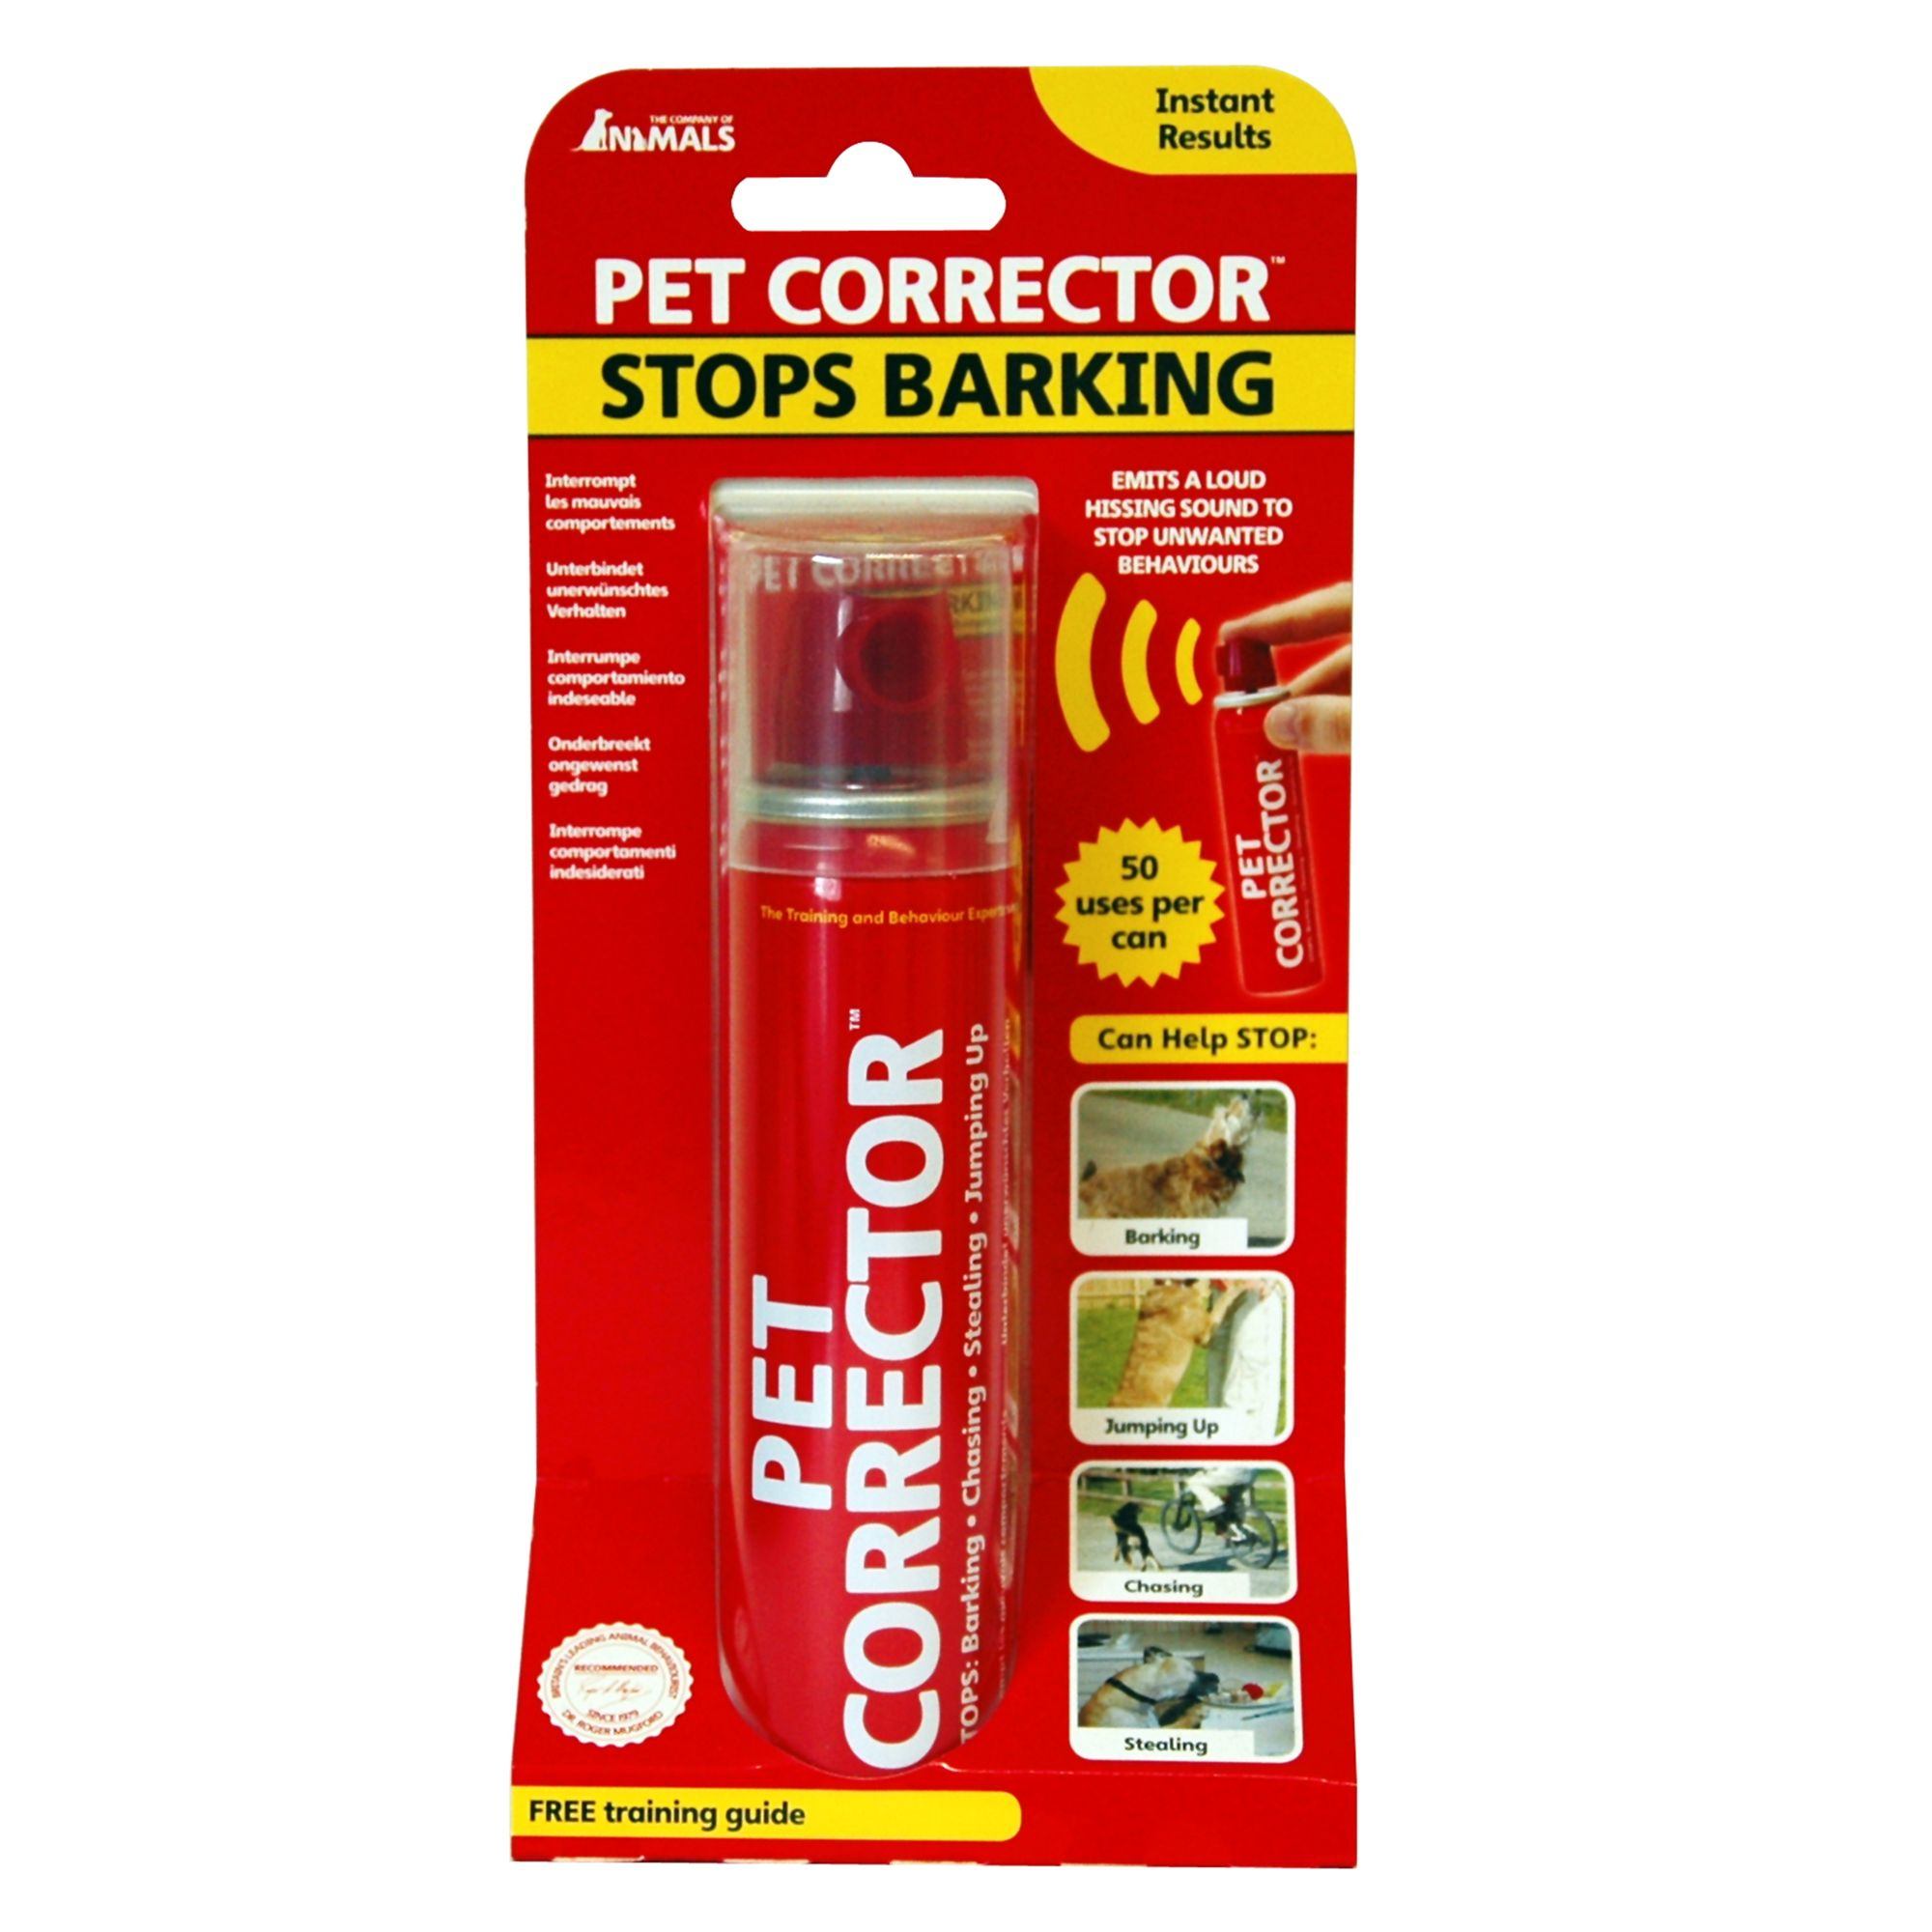 Pet Corrector Stop Barking Behavior Dog Corrector